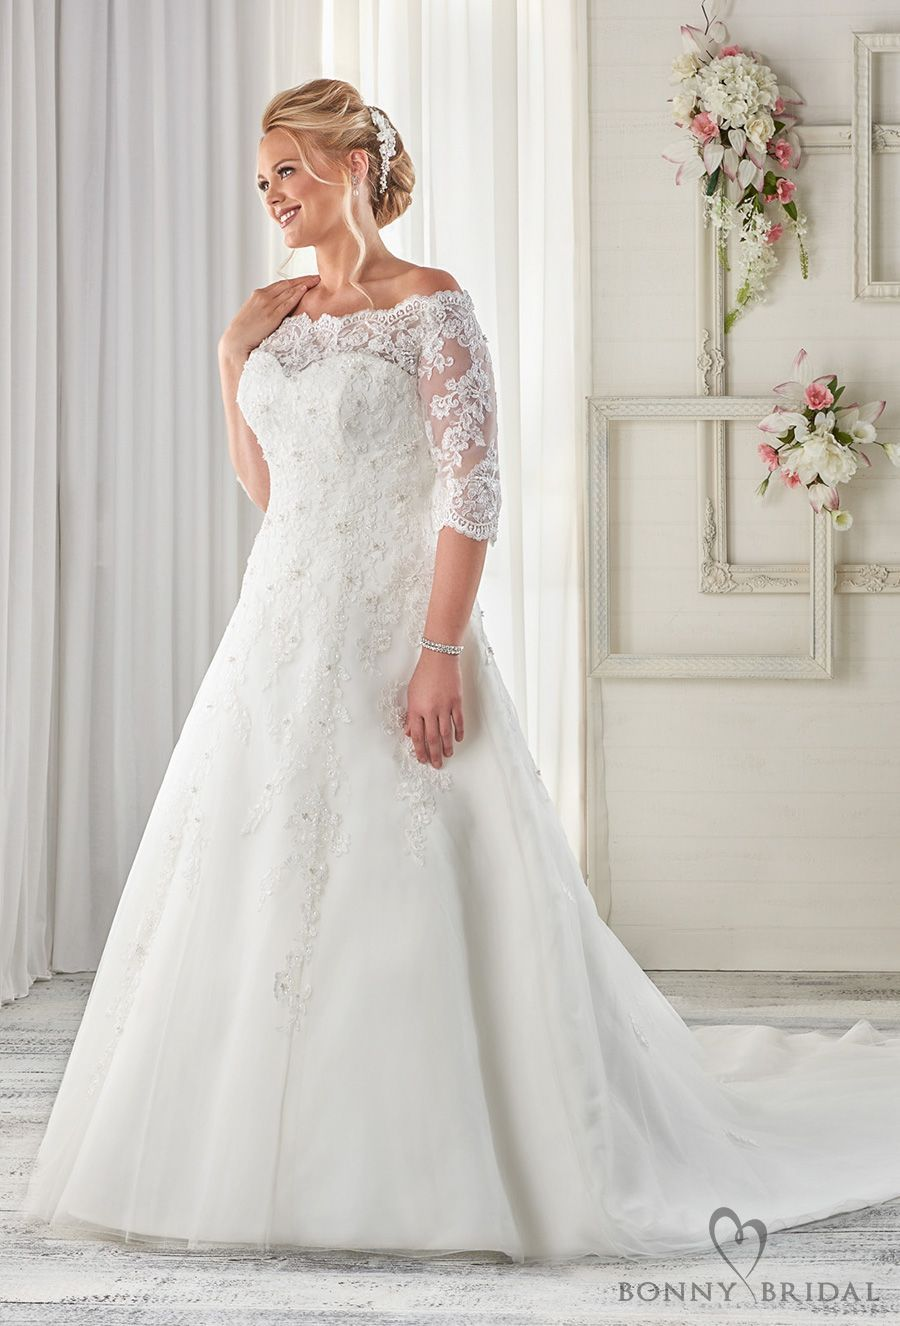 Mature bride wedding dresses  Bonny Bridal Wedding Dresses u Unforgettable Styles for Every Bride